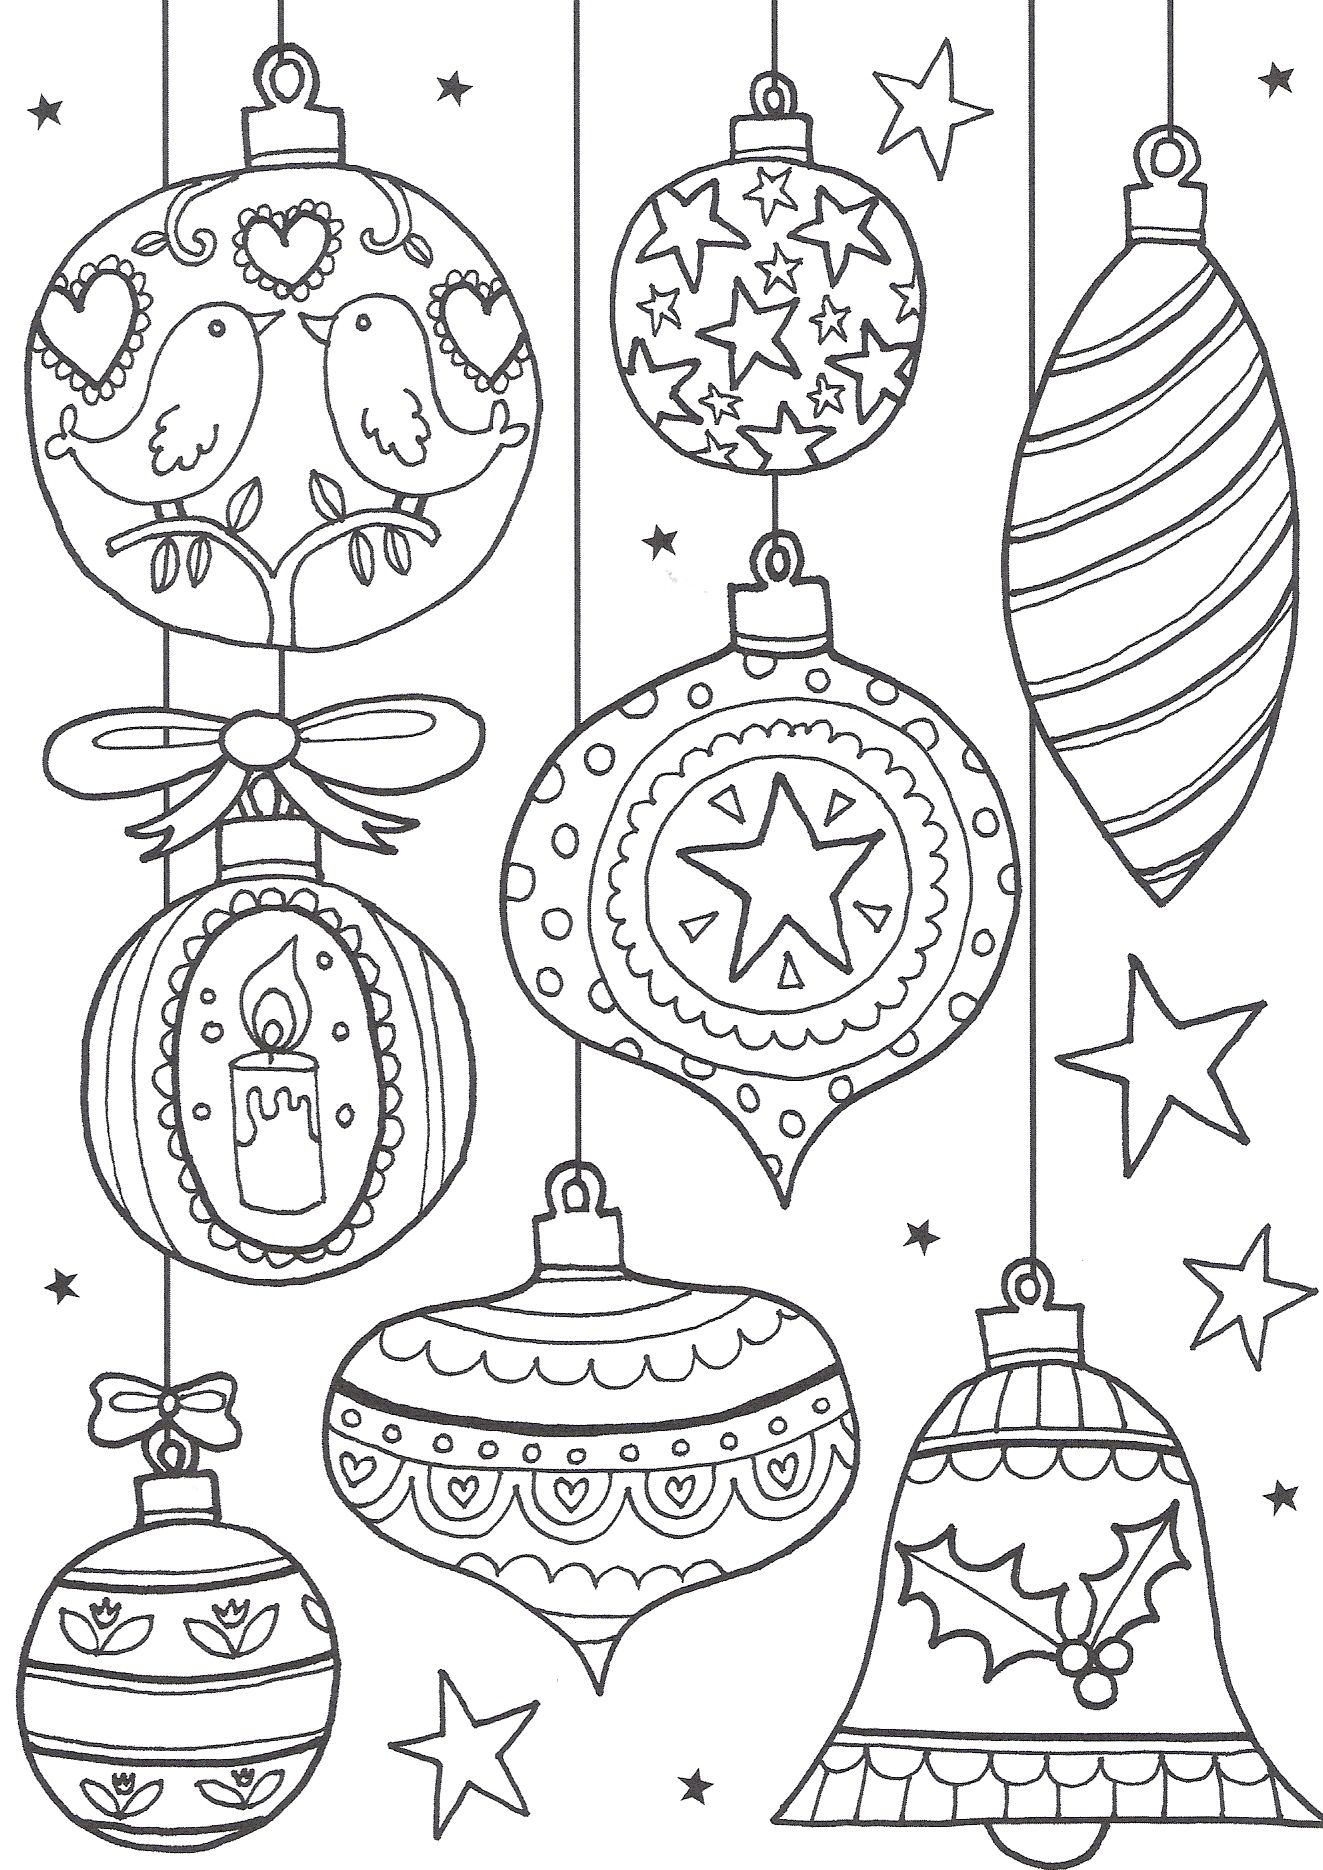 Christmas Coloring And Activity Books With Free Colouring Pages For Adults The Ultimate Roundup